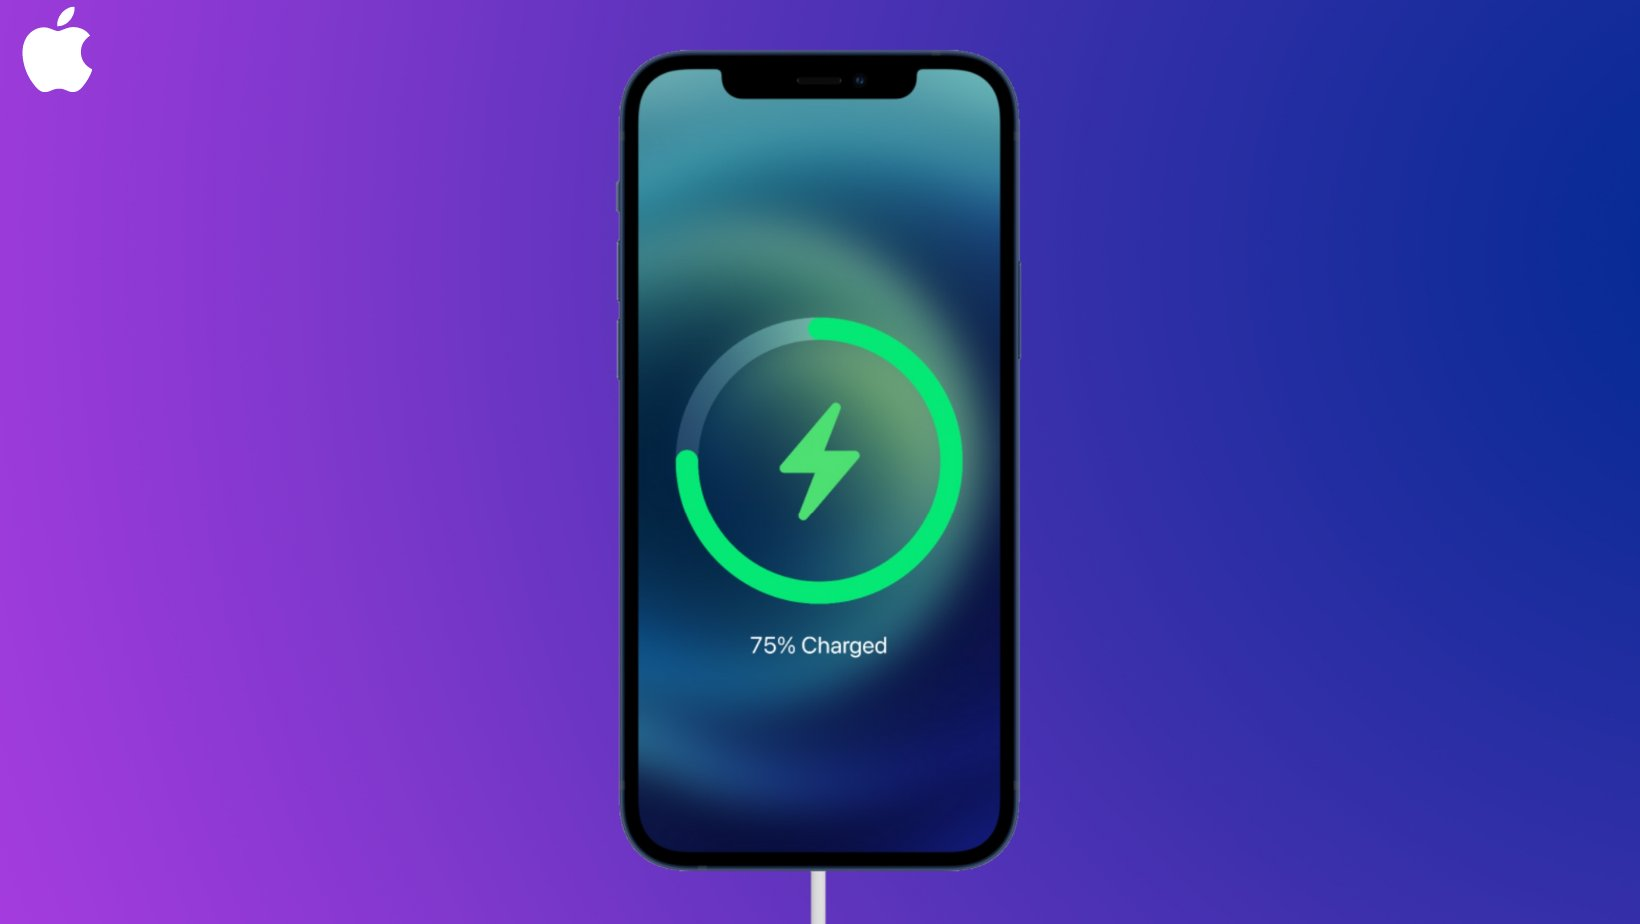 Apple iPhone 13 series with reverse wireless charging support